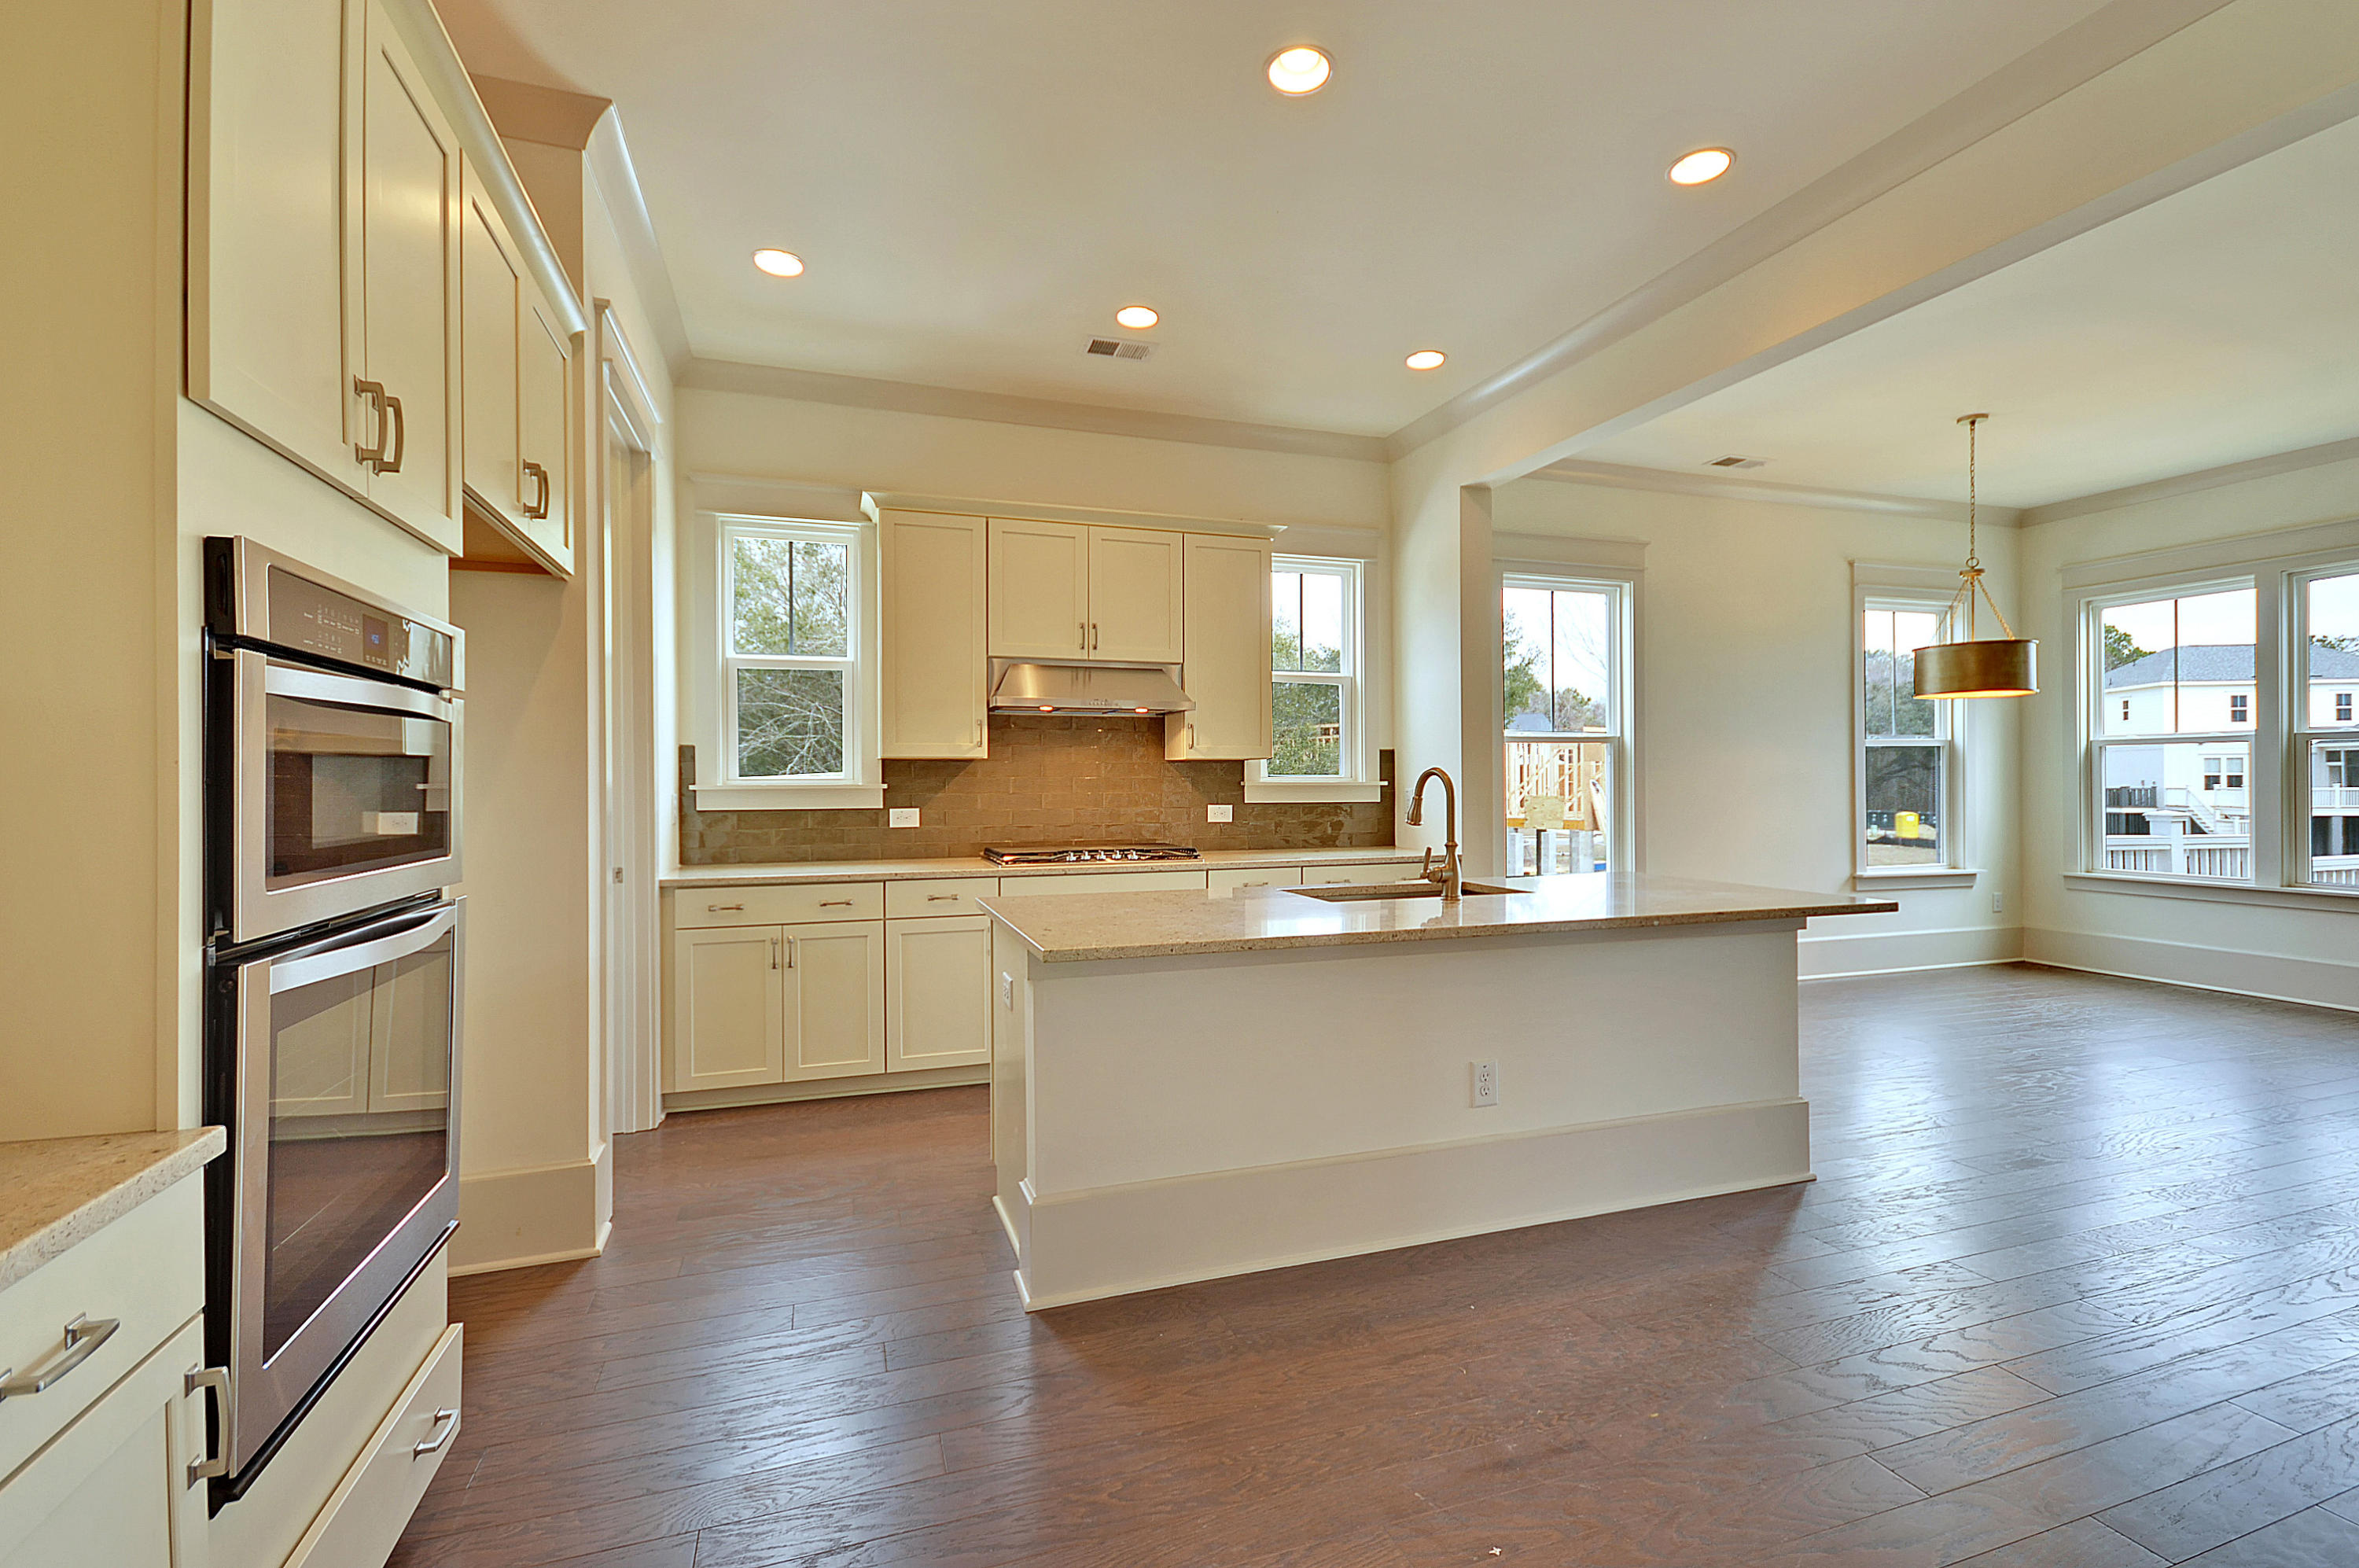 Stratton by the Sound Homes For Sale - 1440 Stratton Place, Mount Pleasant, SC - 15